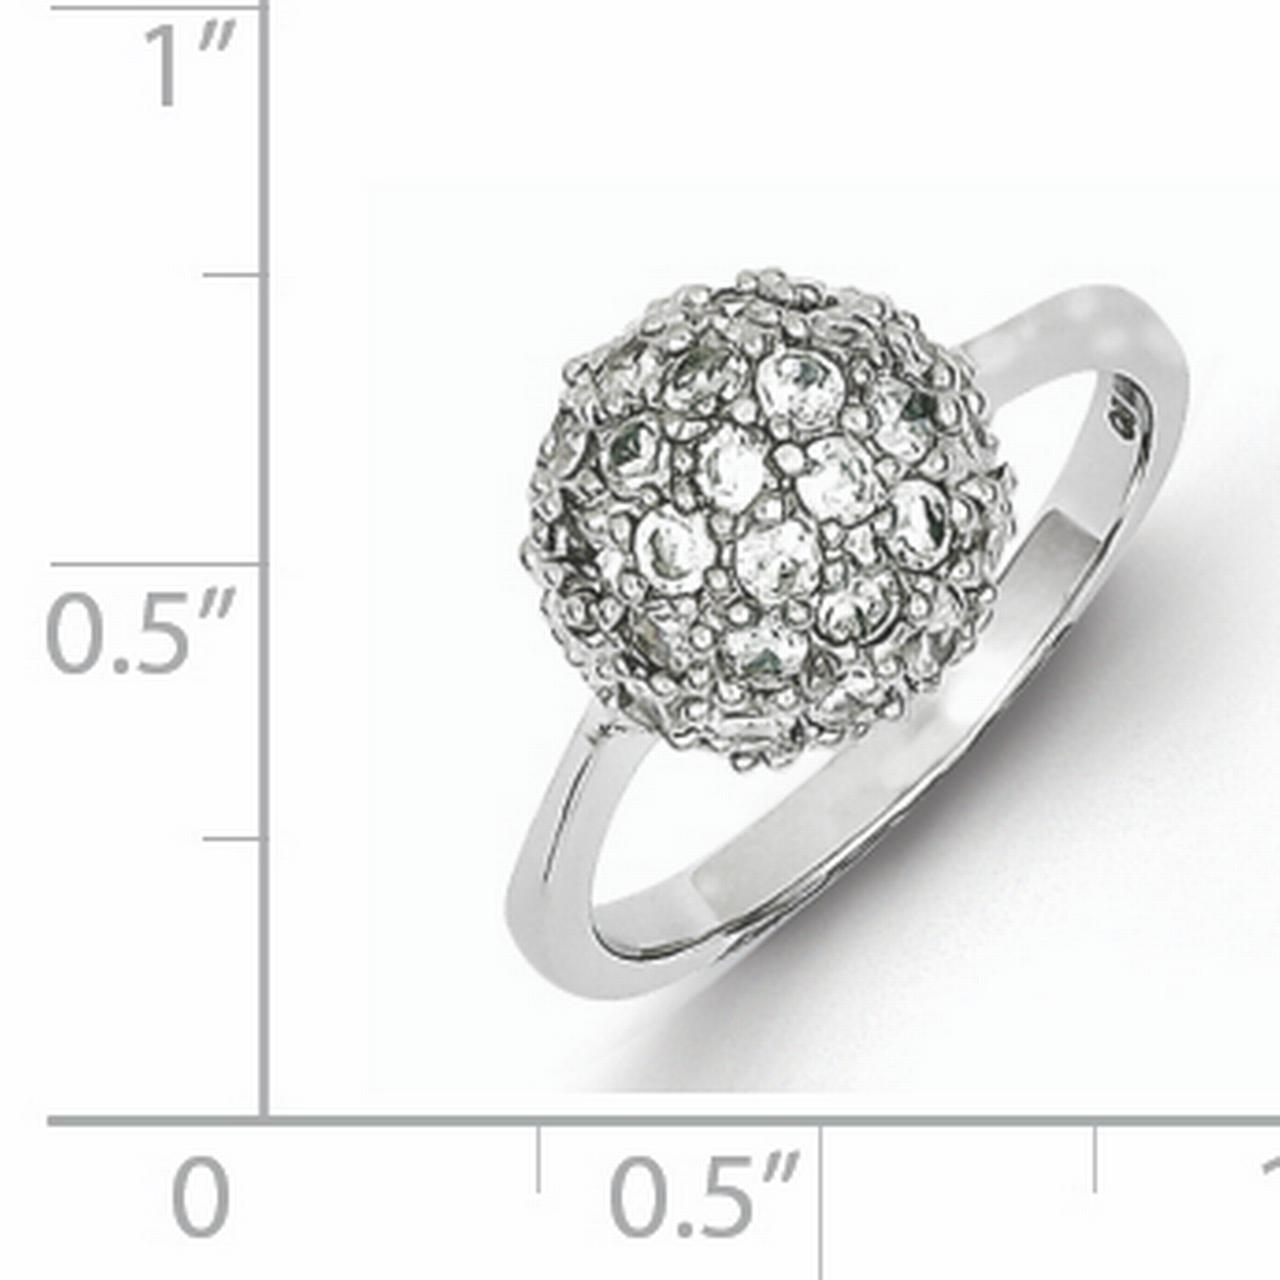 925 Sterling Silver Cubic Zirconia Cz Band Ring Size 8.00 Fine Jewelry Gifts For Women For Her - image 1 de 2